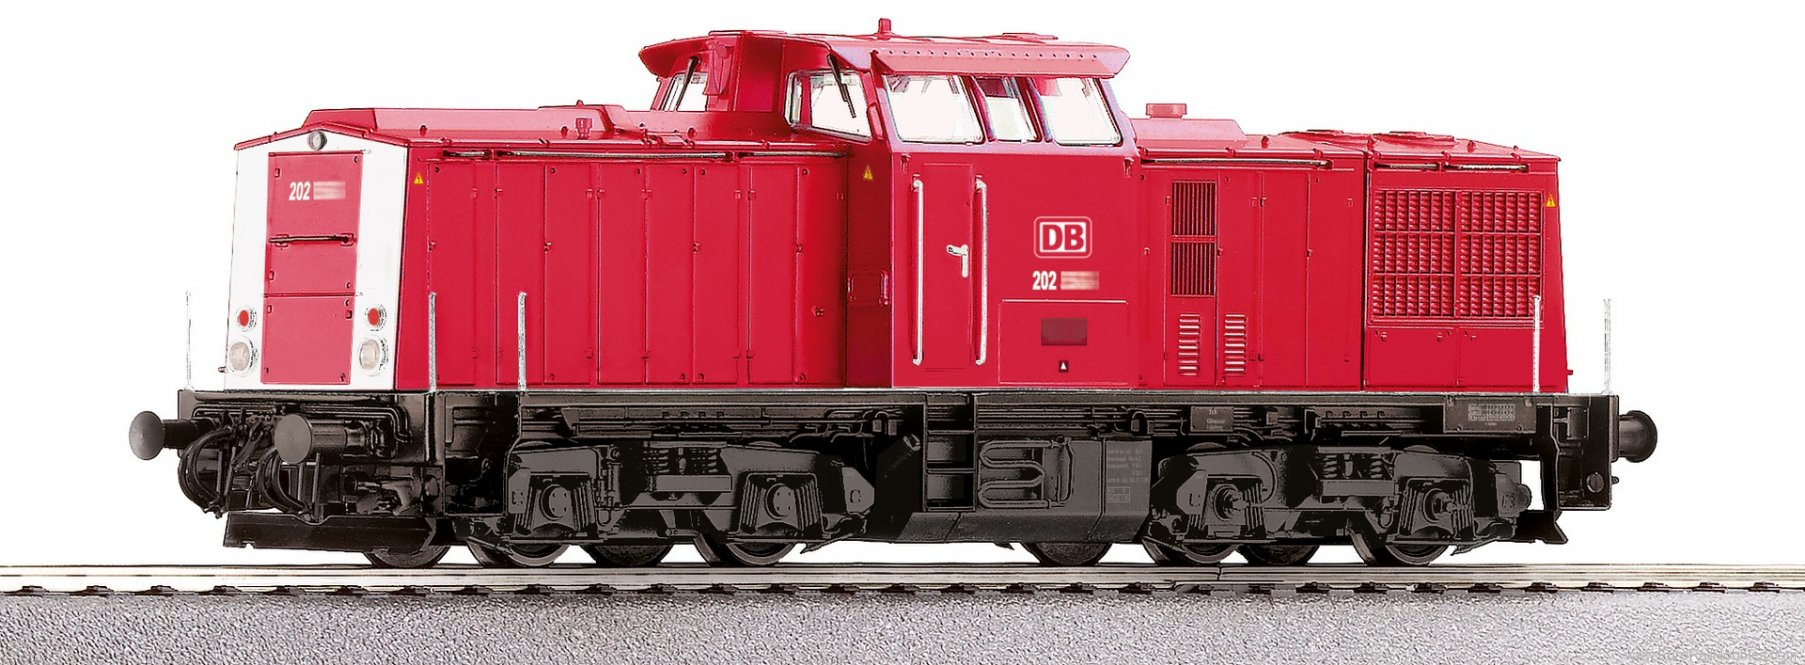 Roco 73756 Diesel locomotive class 202, DB AG (Digital S